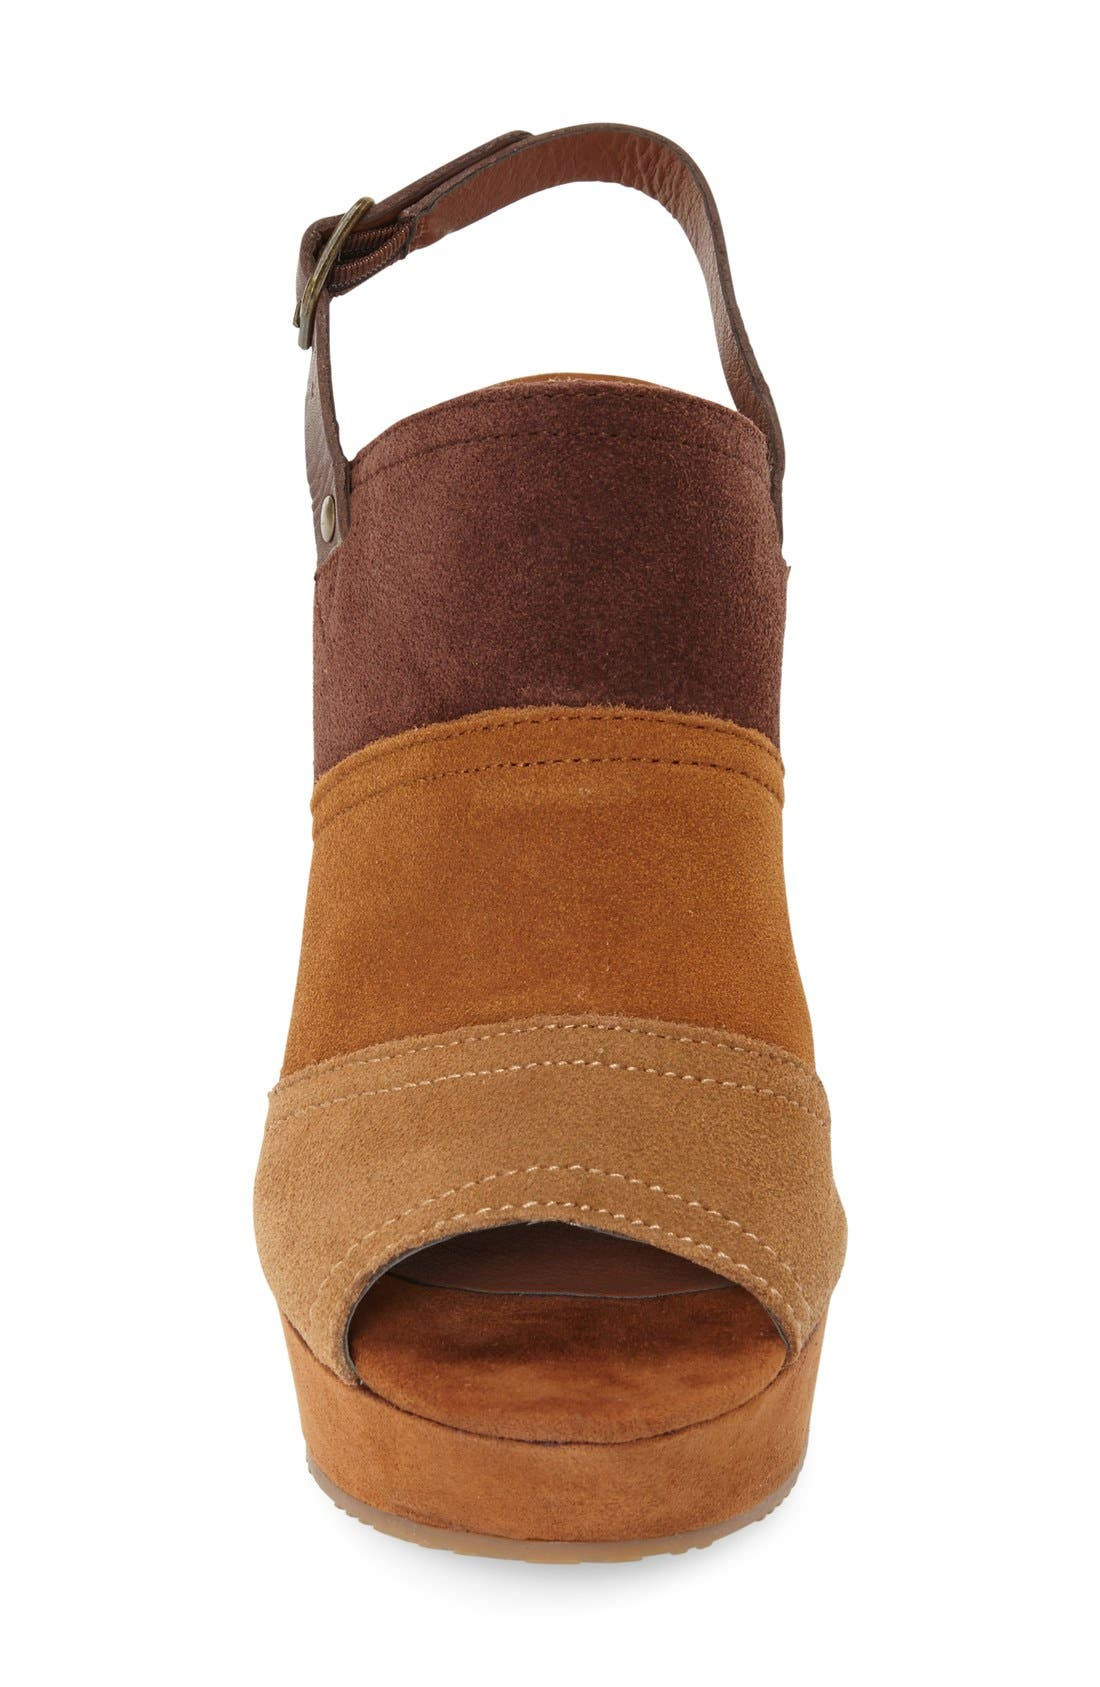 Alternate Image 3  - Lucky Brand 'Frescala' Wedge Sandal (Women)